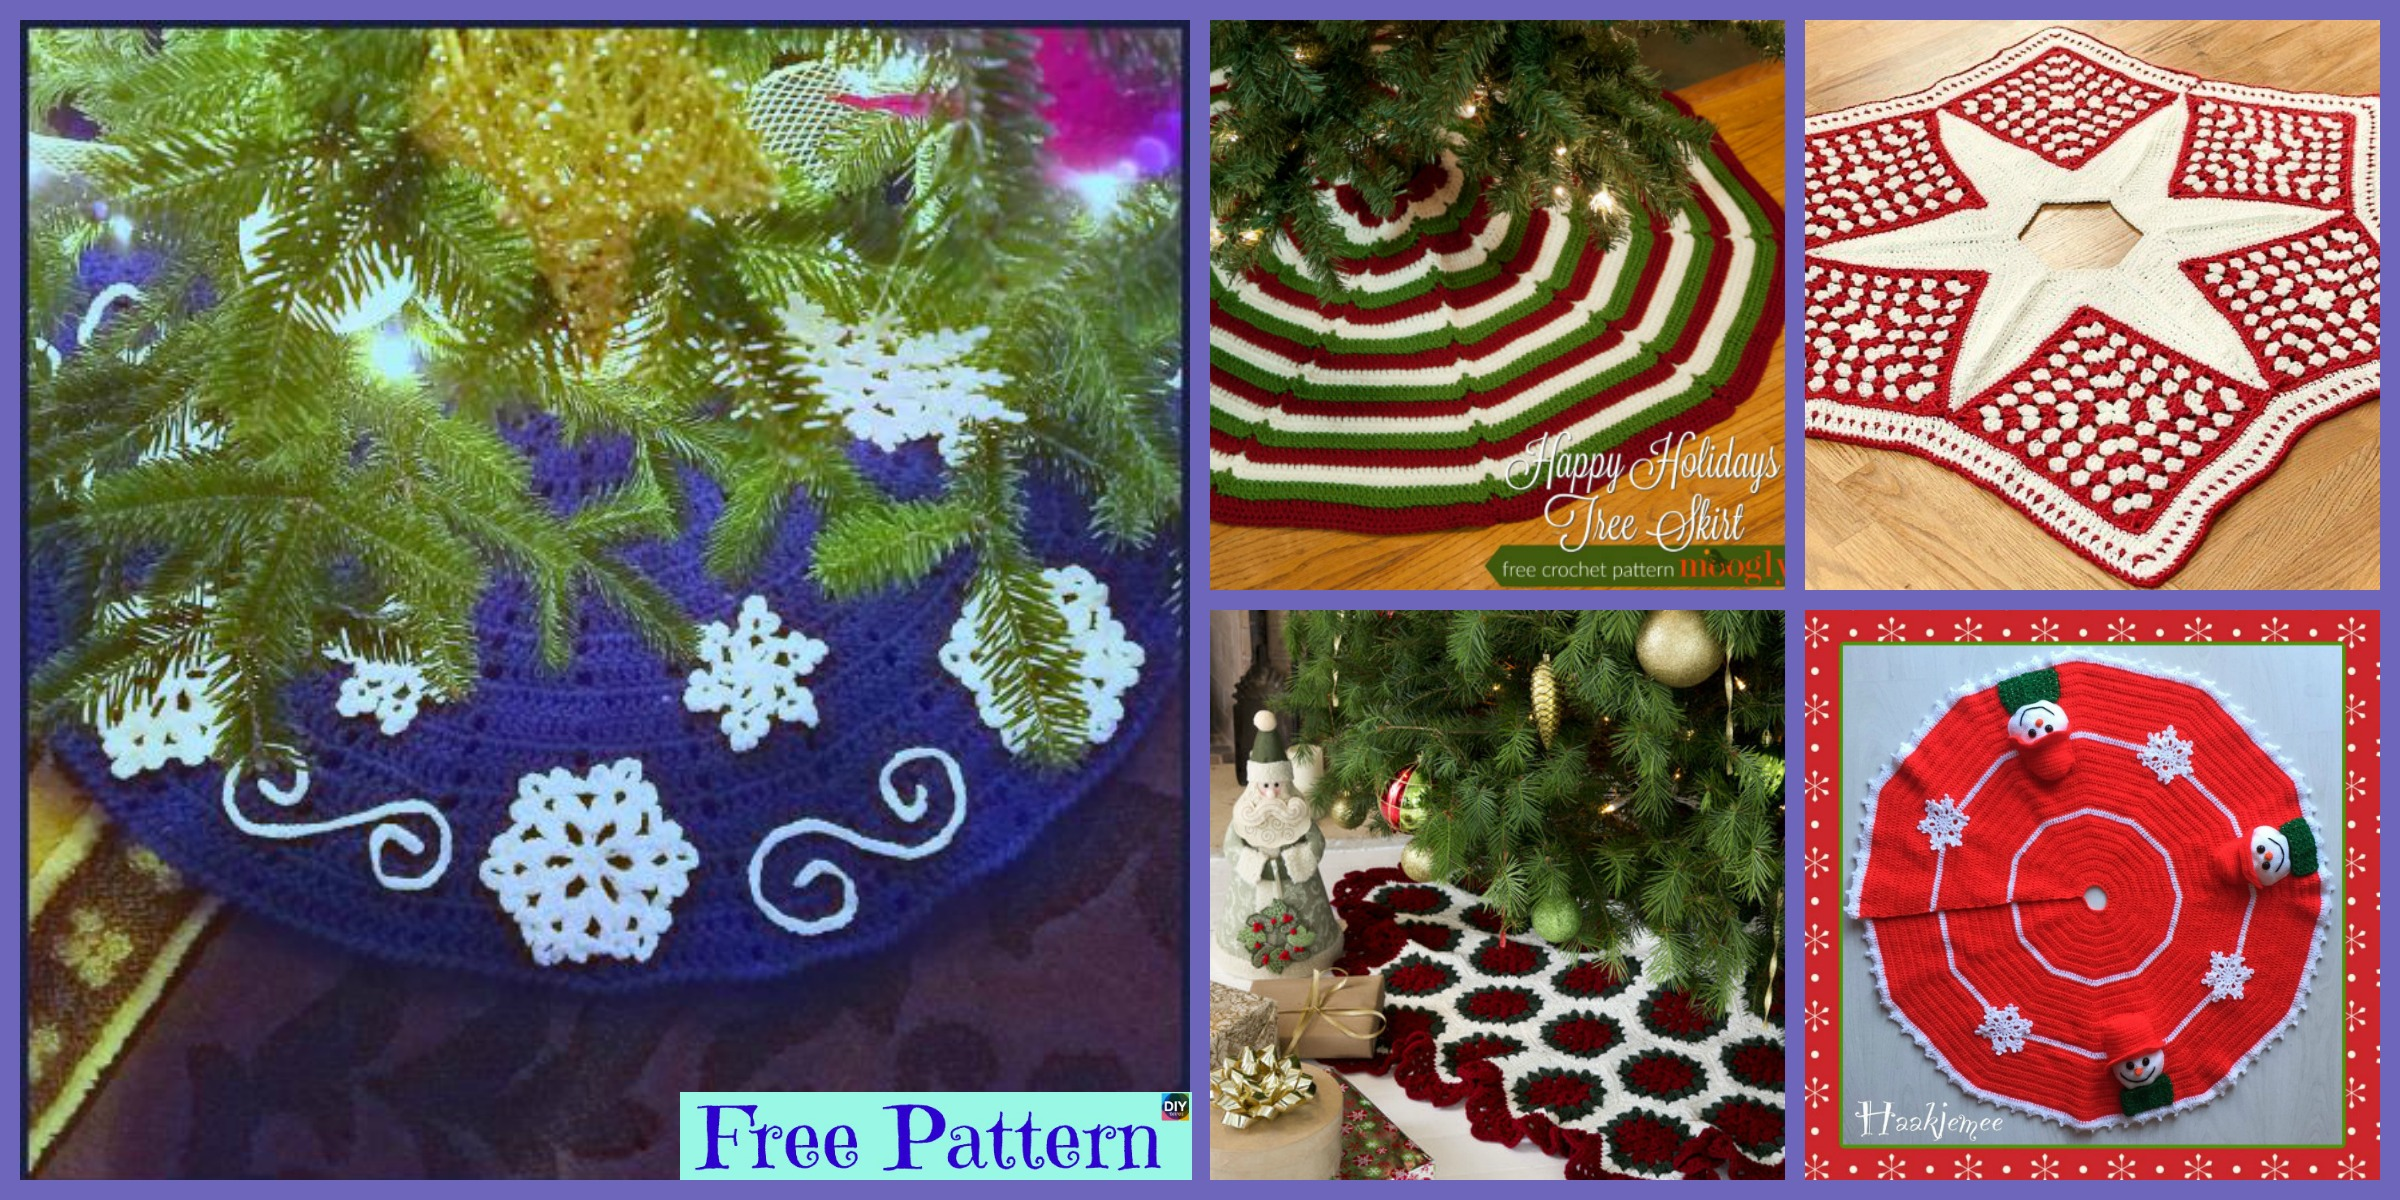 10 Crocheted Christmas Tree Skirt – Free Patterns